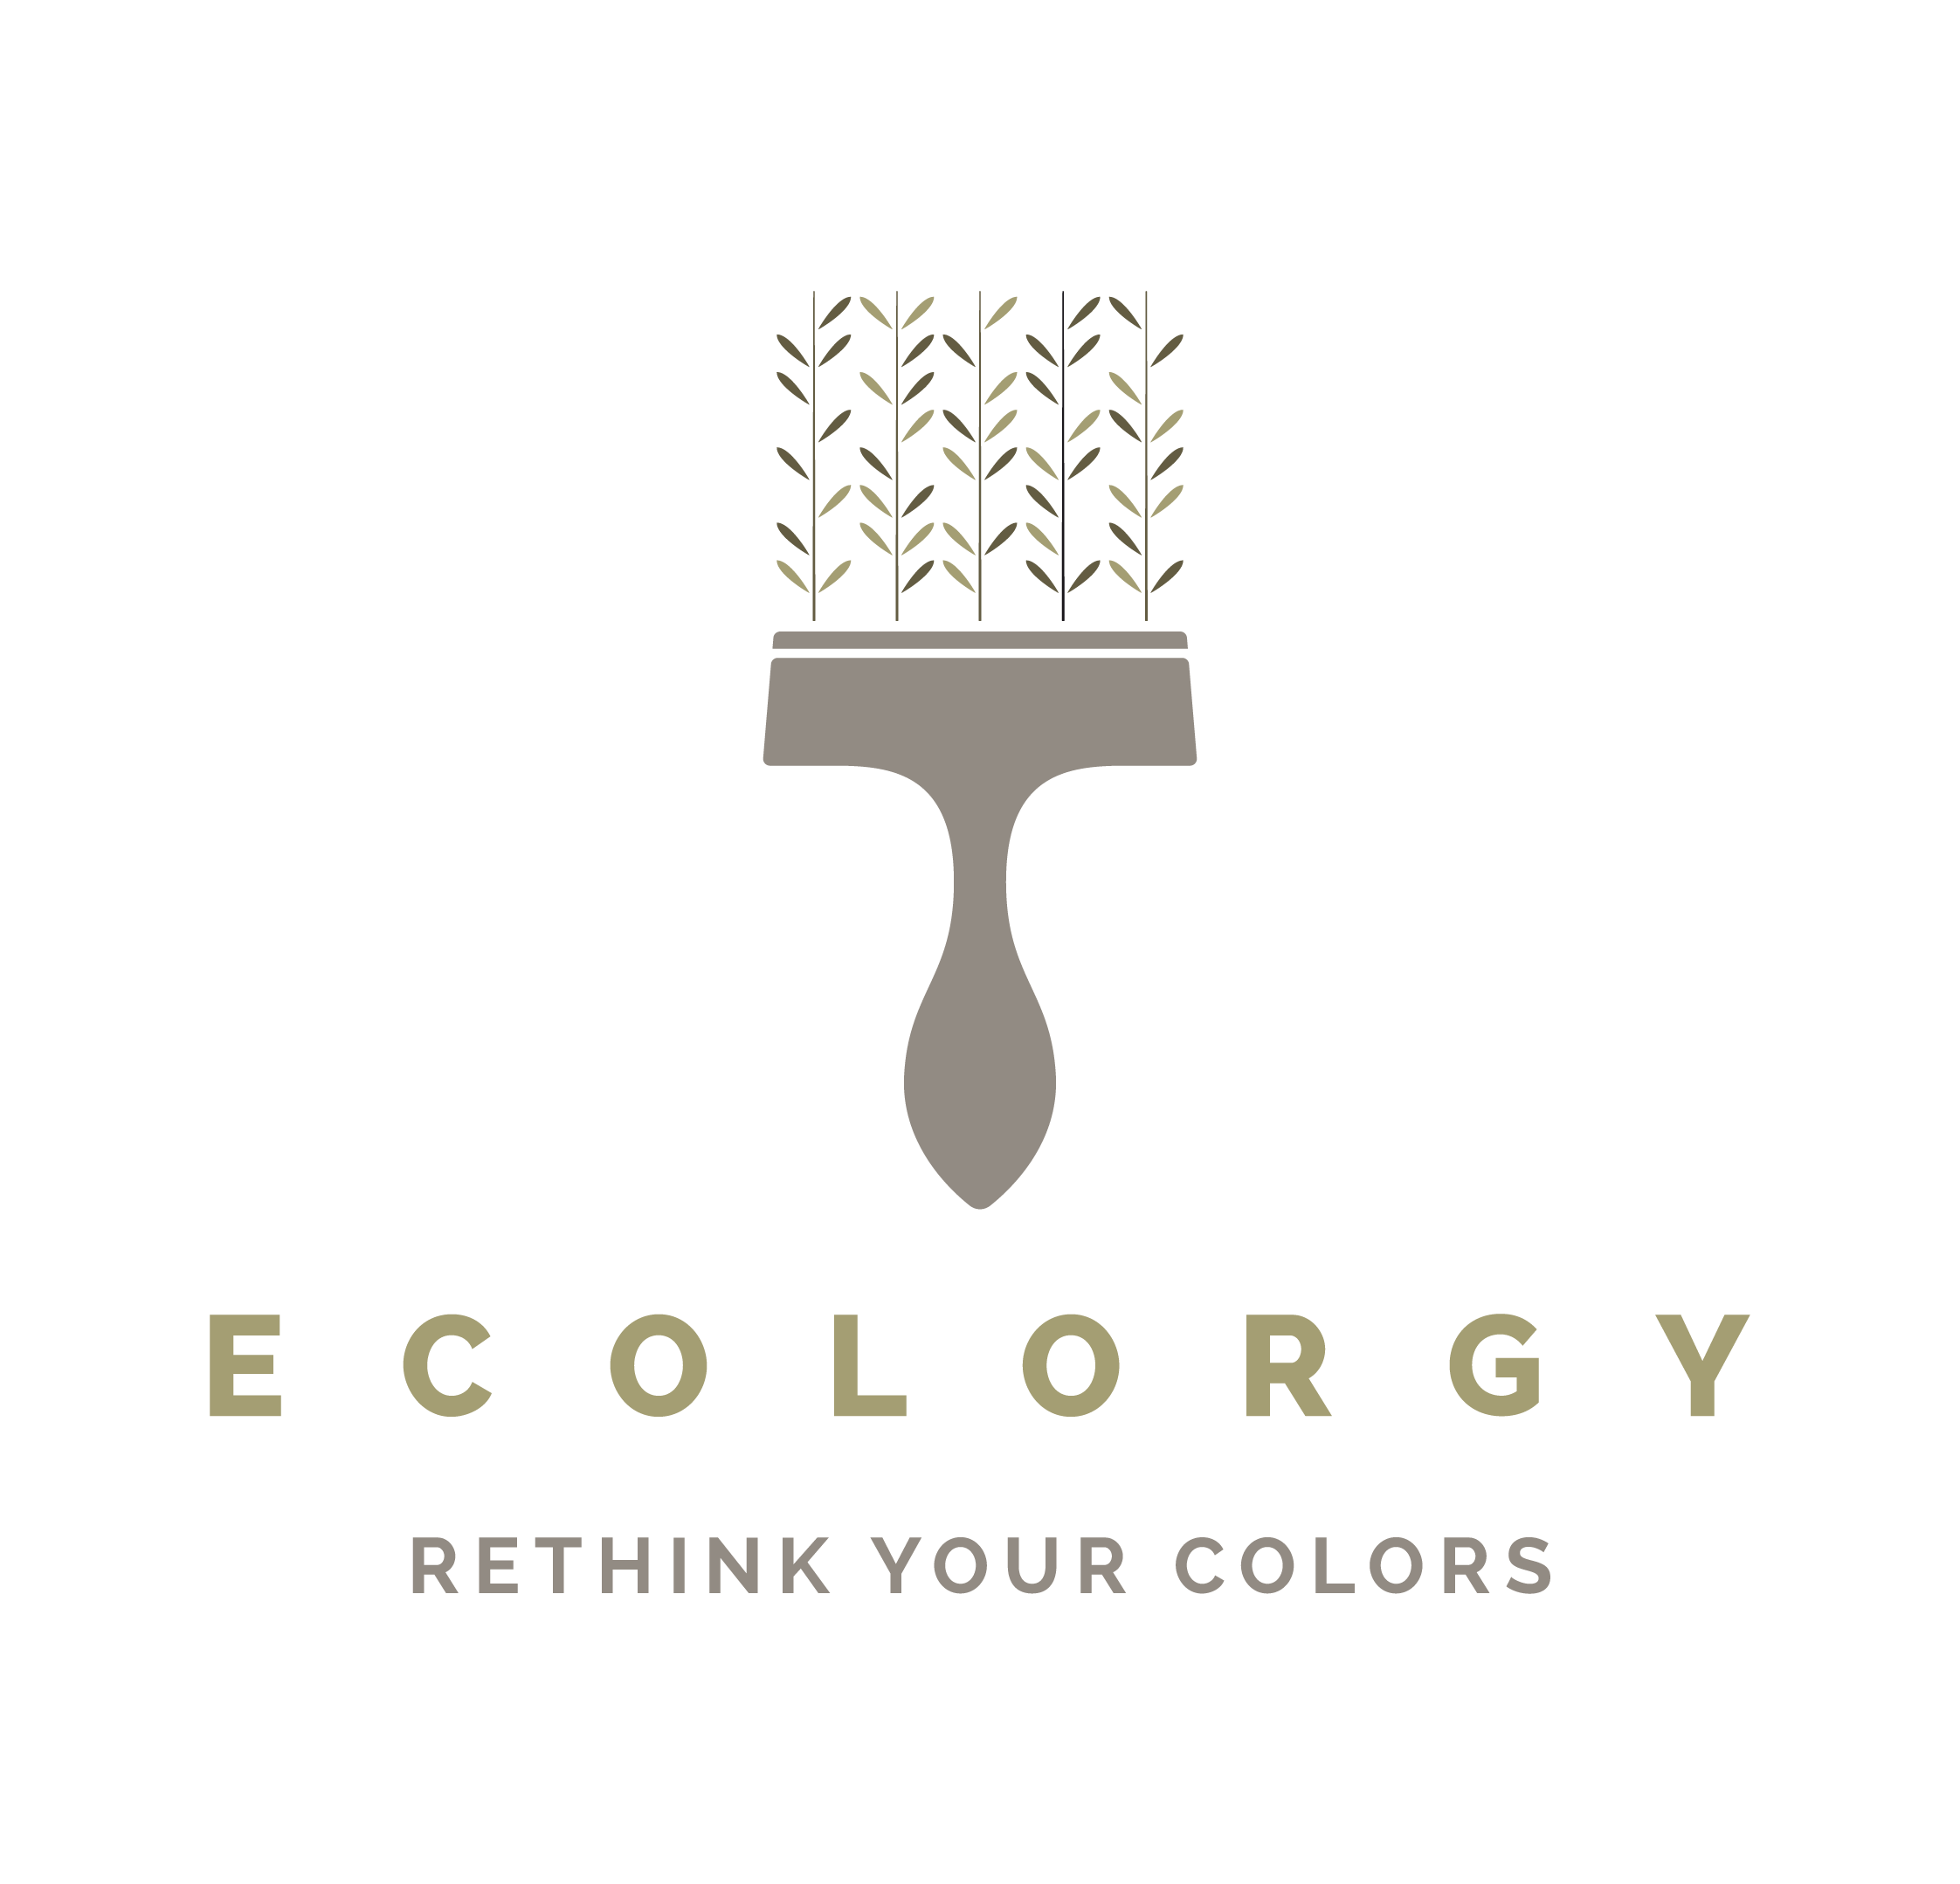 Ecolorgy Rethink Your Colors